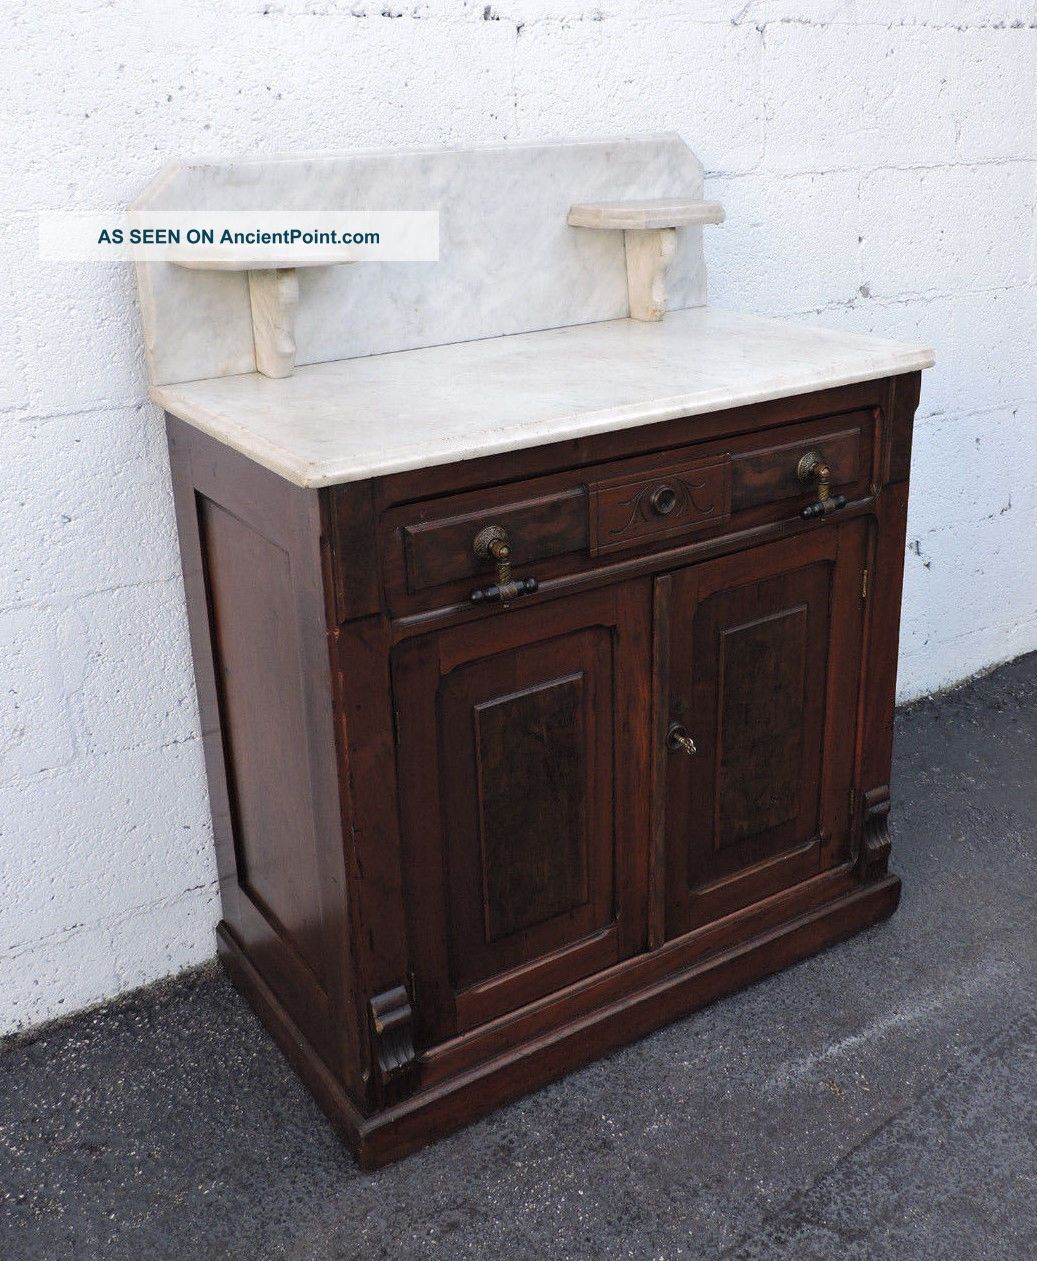 Early Victorian Eastlake Carved Marble - Top Wash Stand Cabinet 7811 1800-1899 photo